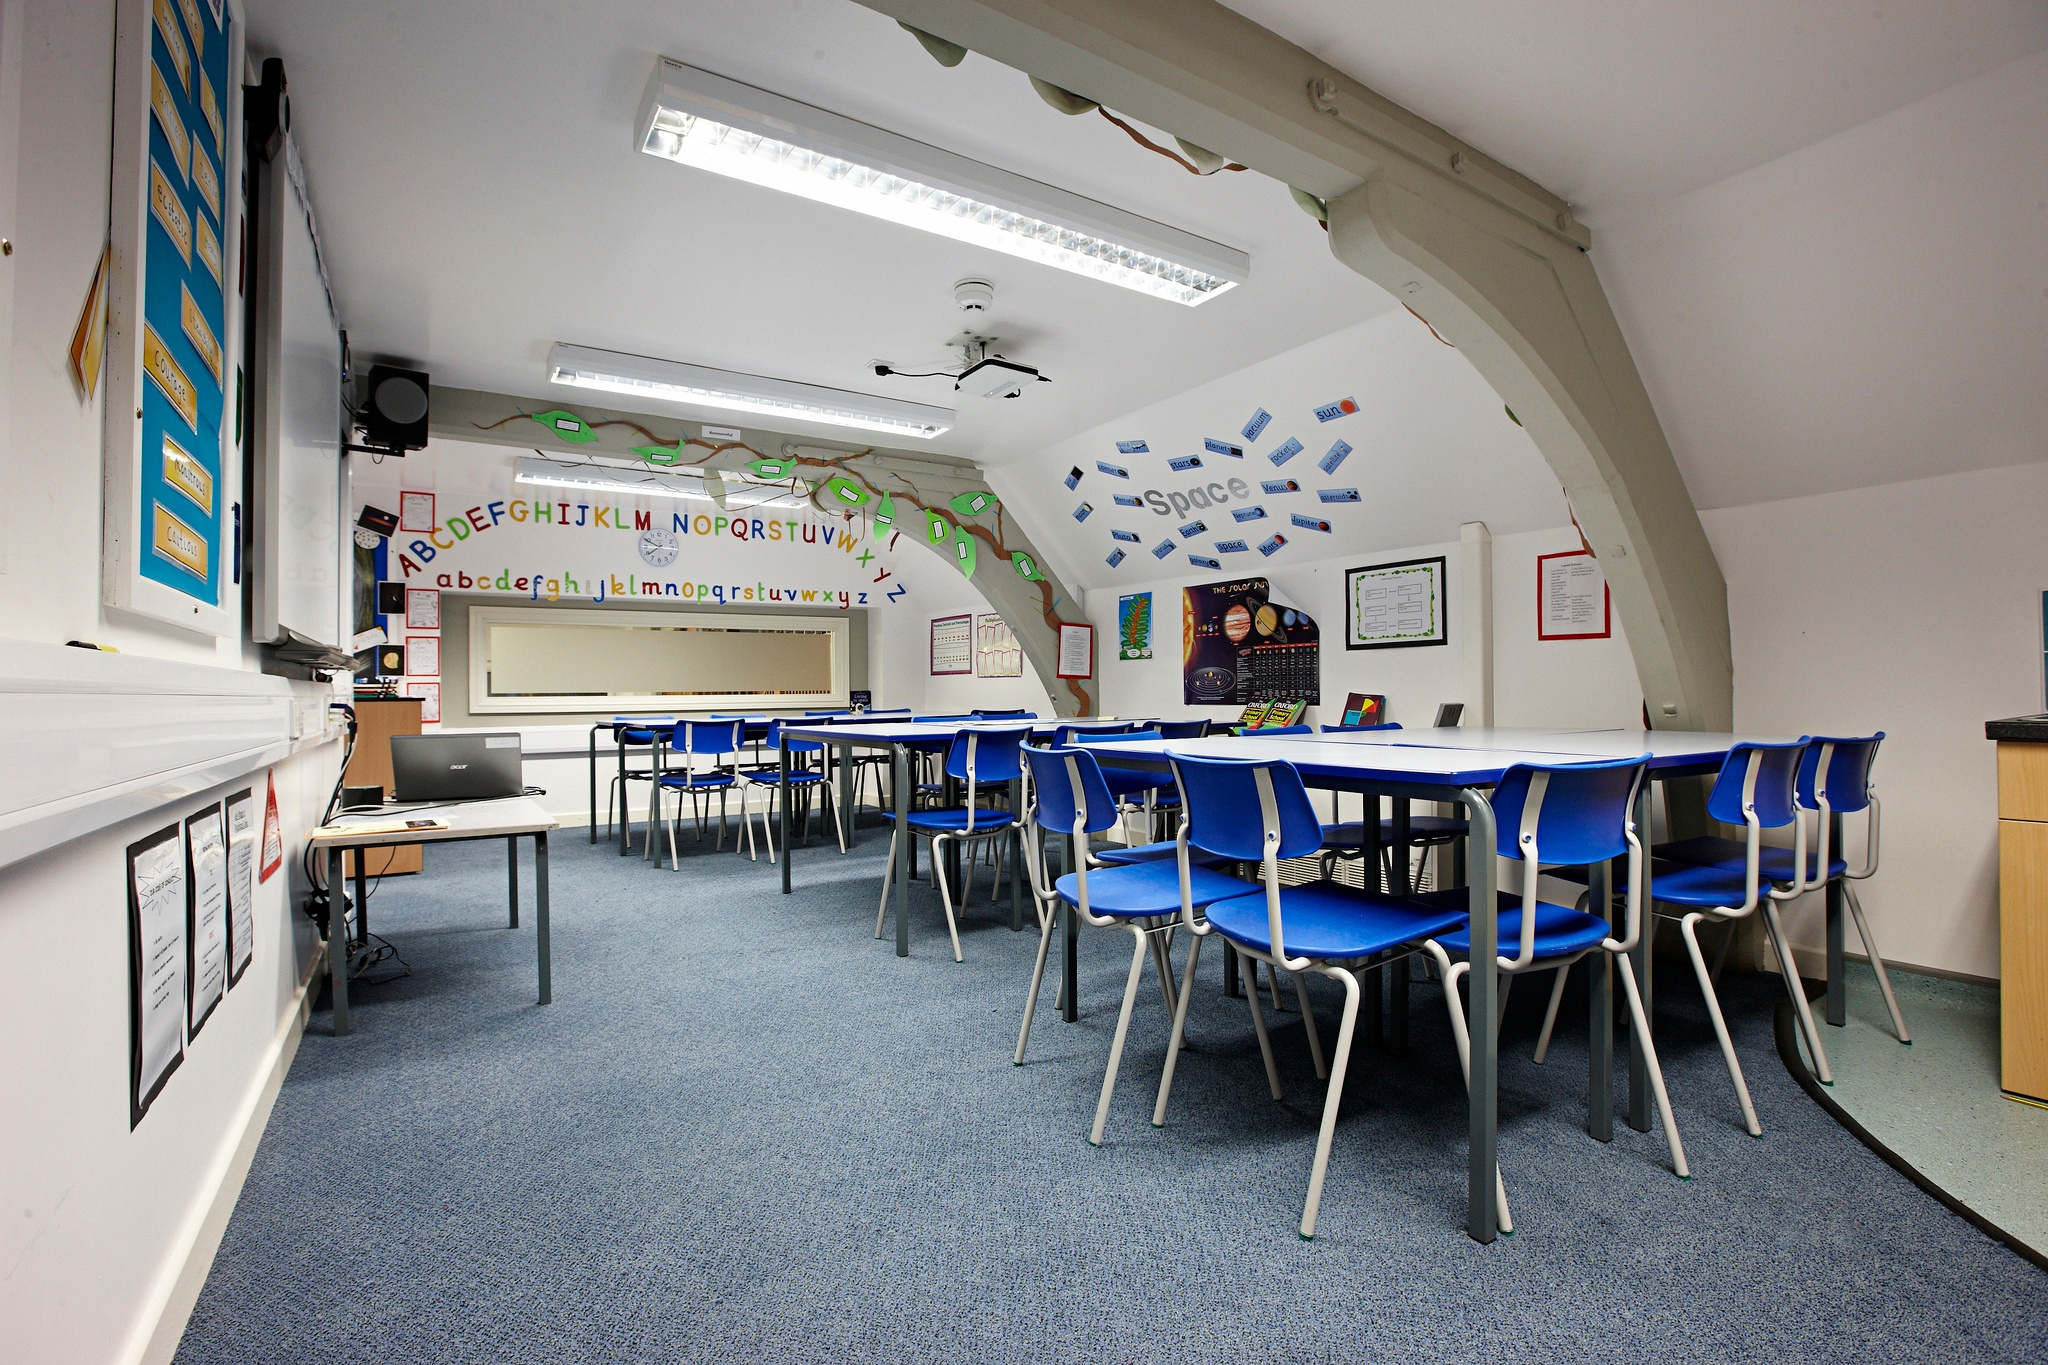 transition strip in classroom education school.jpg